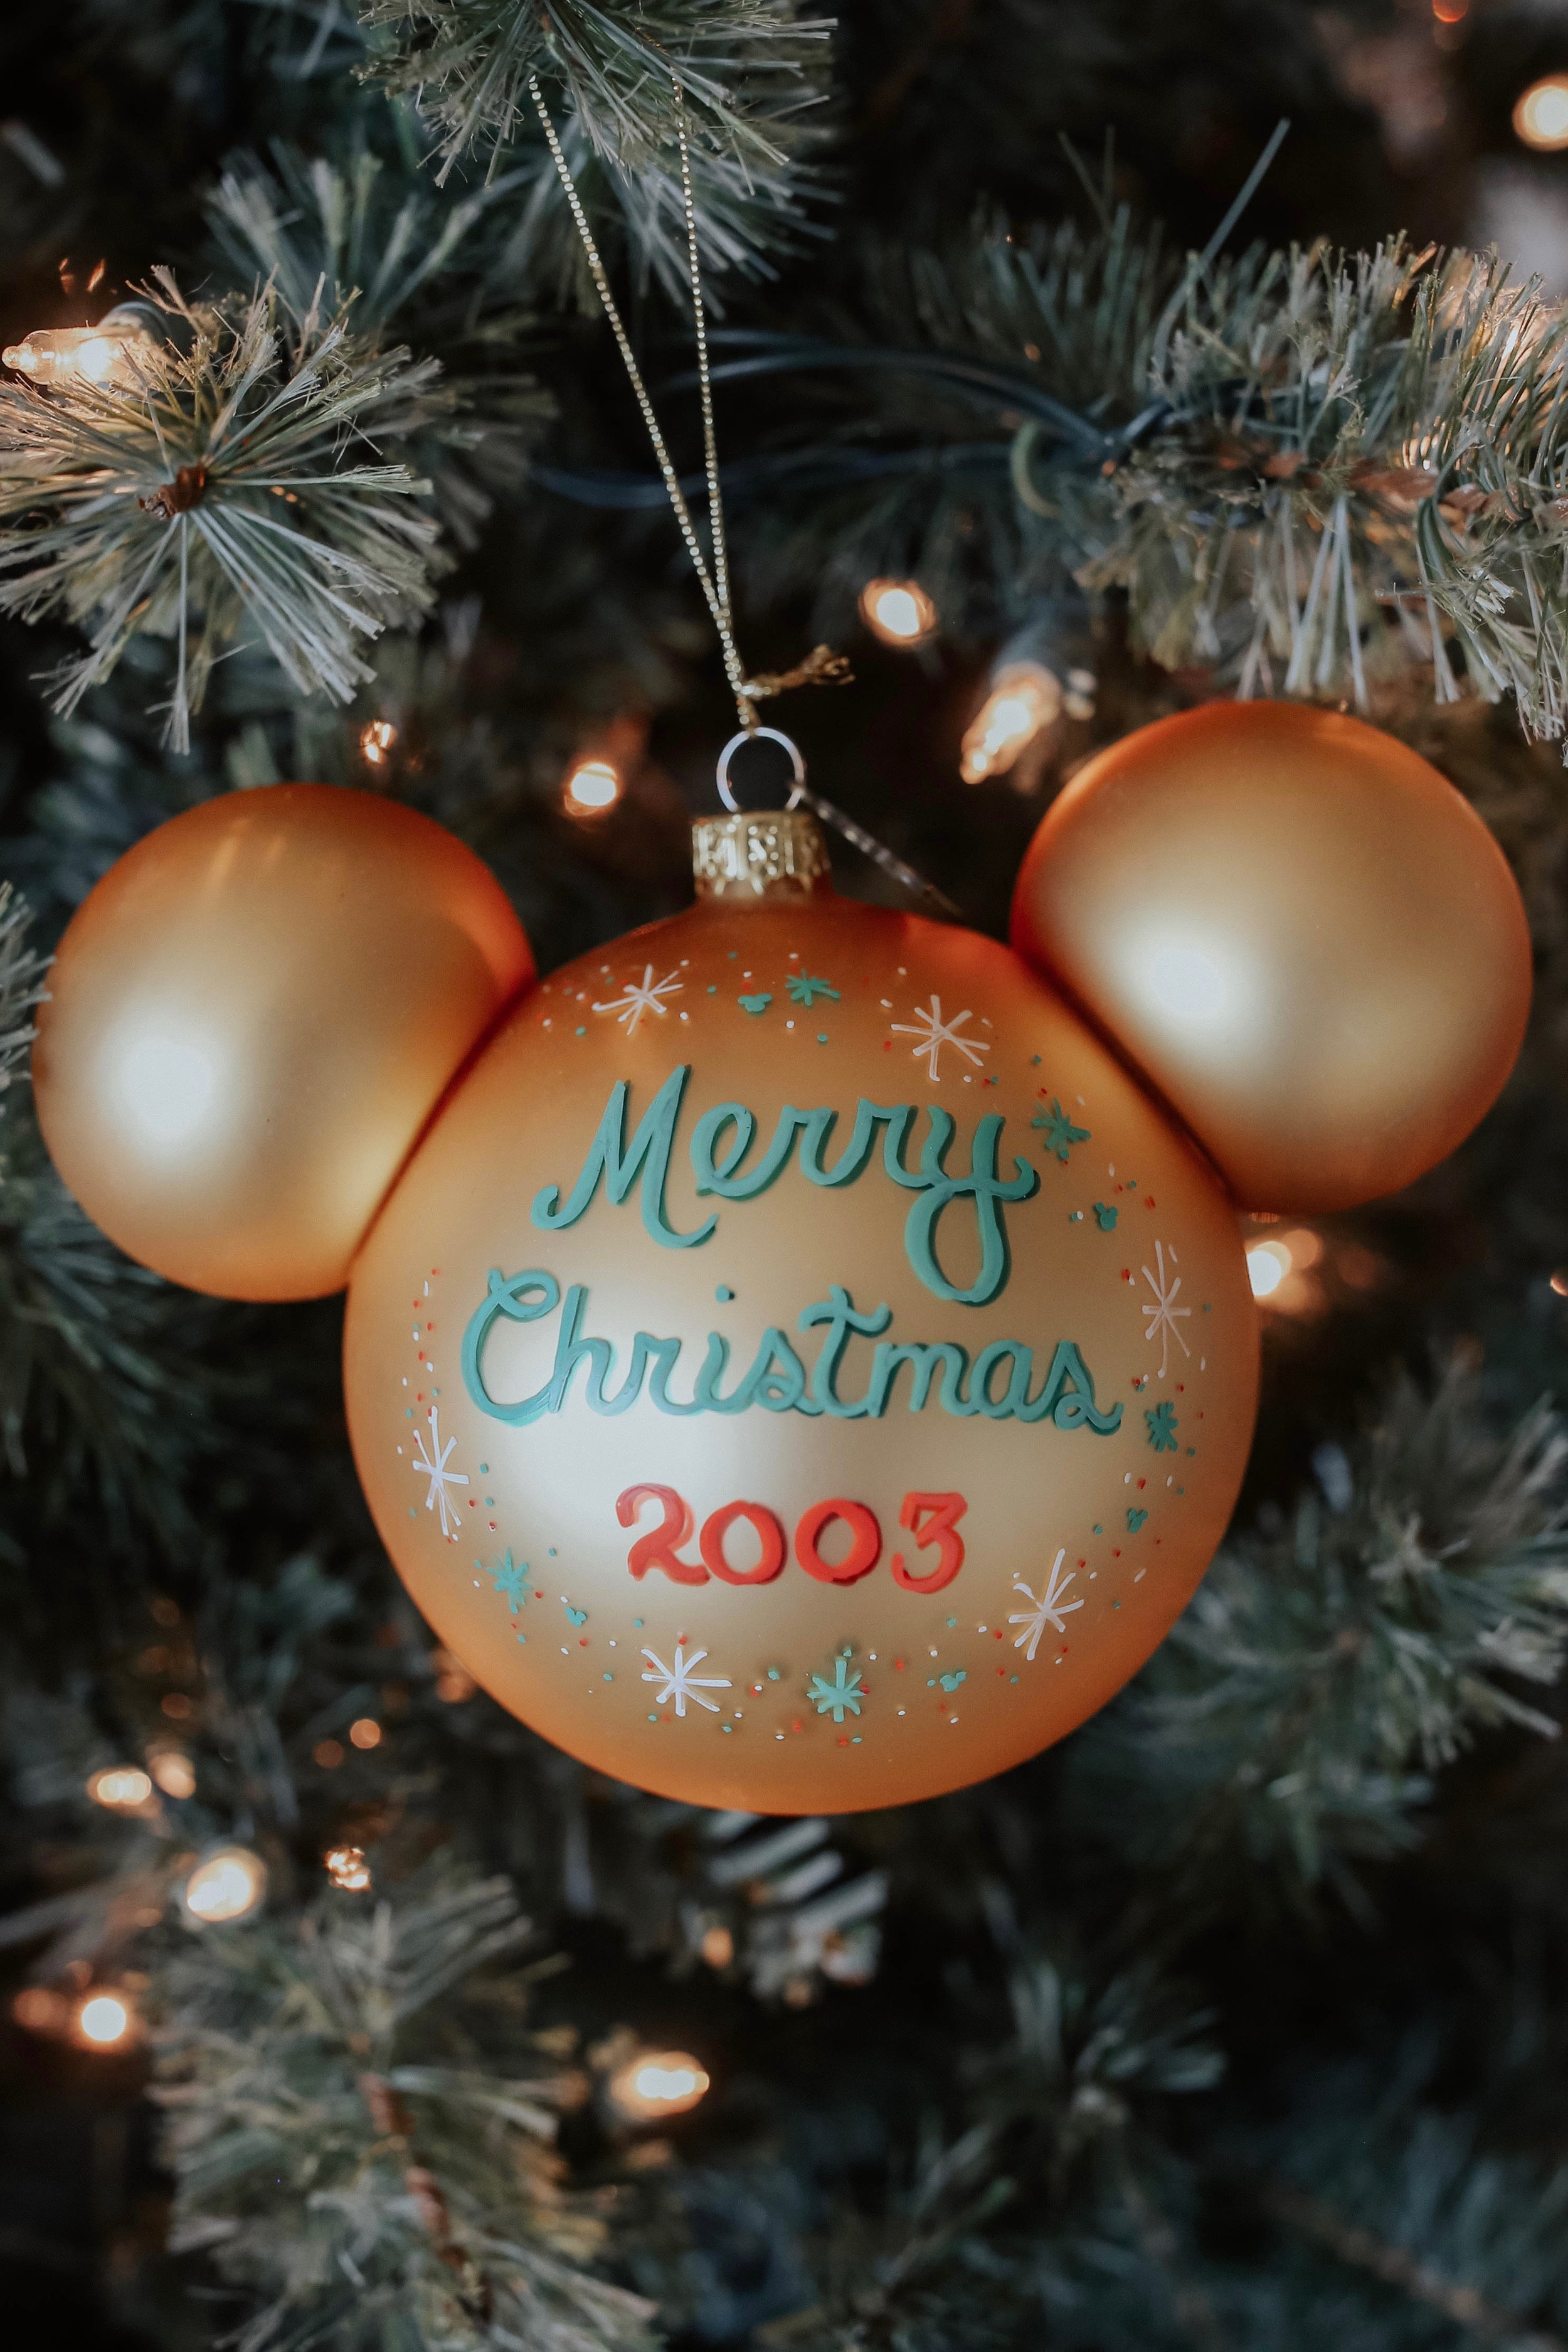 7. hand crafted ornaments - i know, i know. ornaments are usually too cliche and overdone, and everyone already has tons that could fill their tree three times over. but i love giving a handmade ornament, especially now that a lot of my friends are living in their own places with their own trees to decorate. buying handmade also supports artisans, so win-win.PS: if you travel a lot, this is one of the best souvenir- type things to buy. my family went to Disney World every year the week after Thanksgiving and the ornaments we got there are still some of my favorites. if you aren't sure where to look, check out the local farmer's market, they will have the best selection :)don't wanna leave the house?